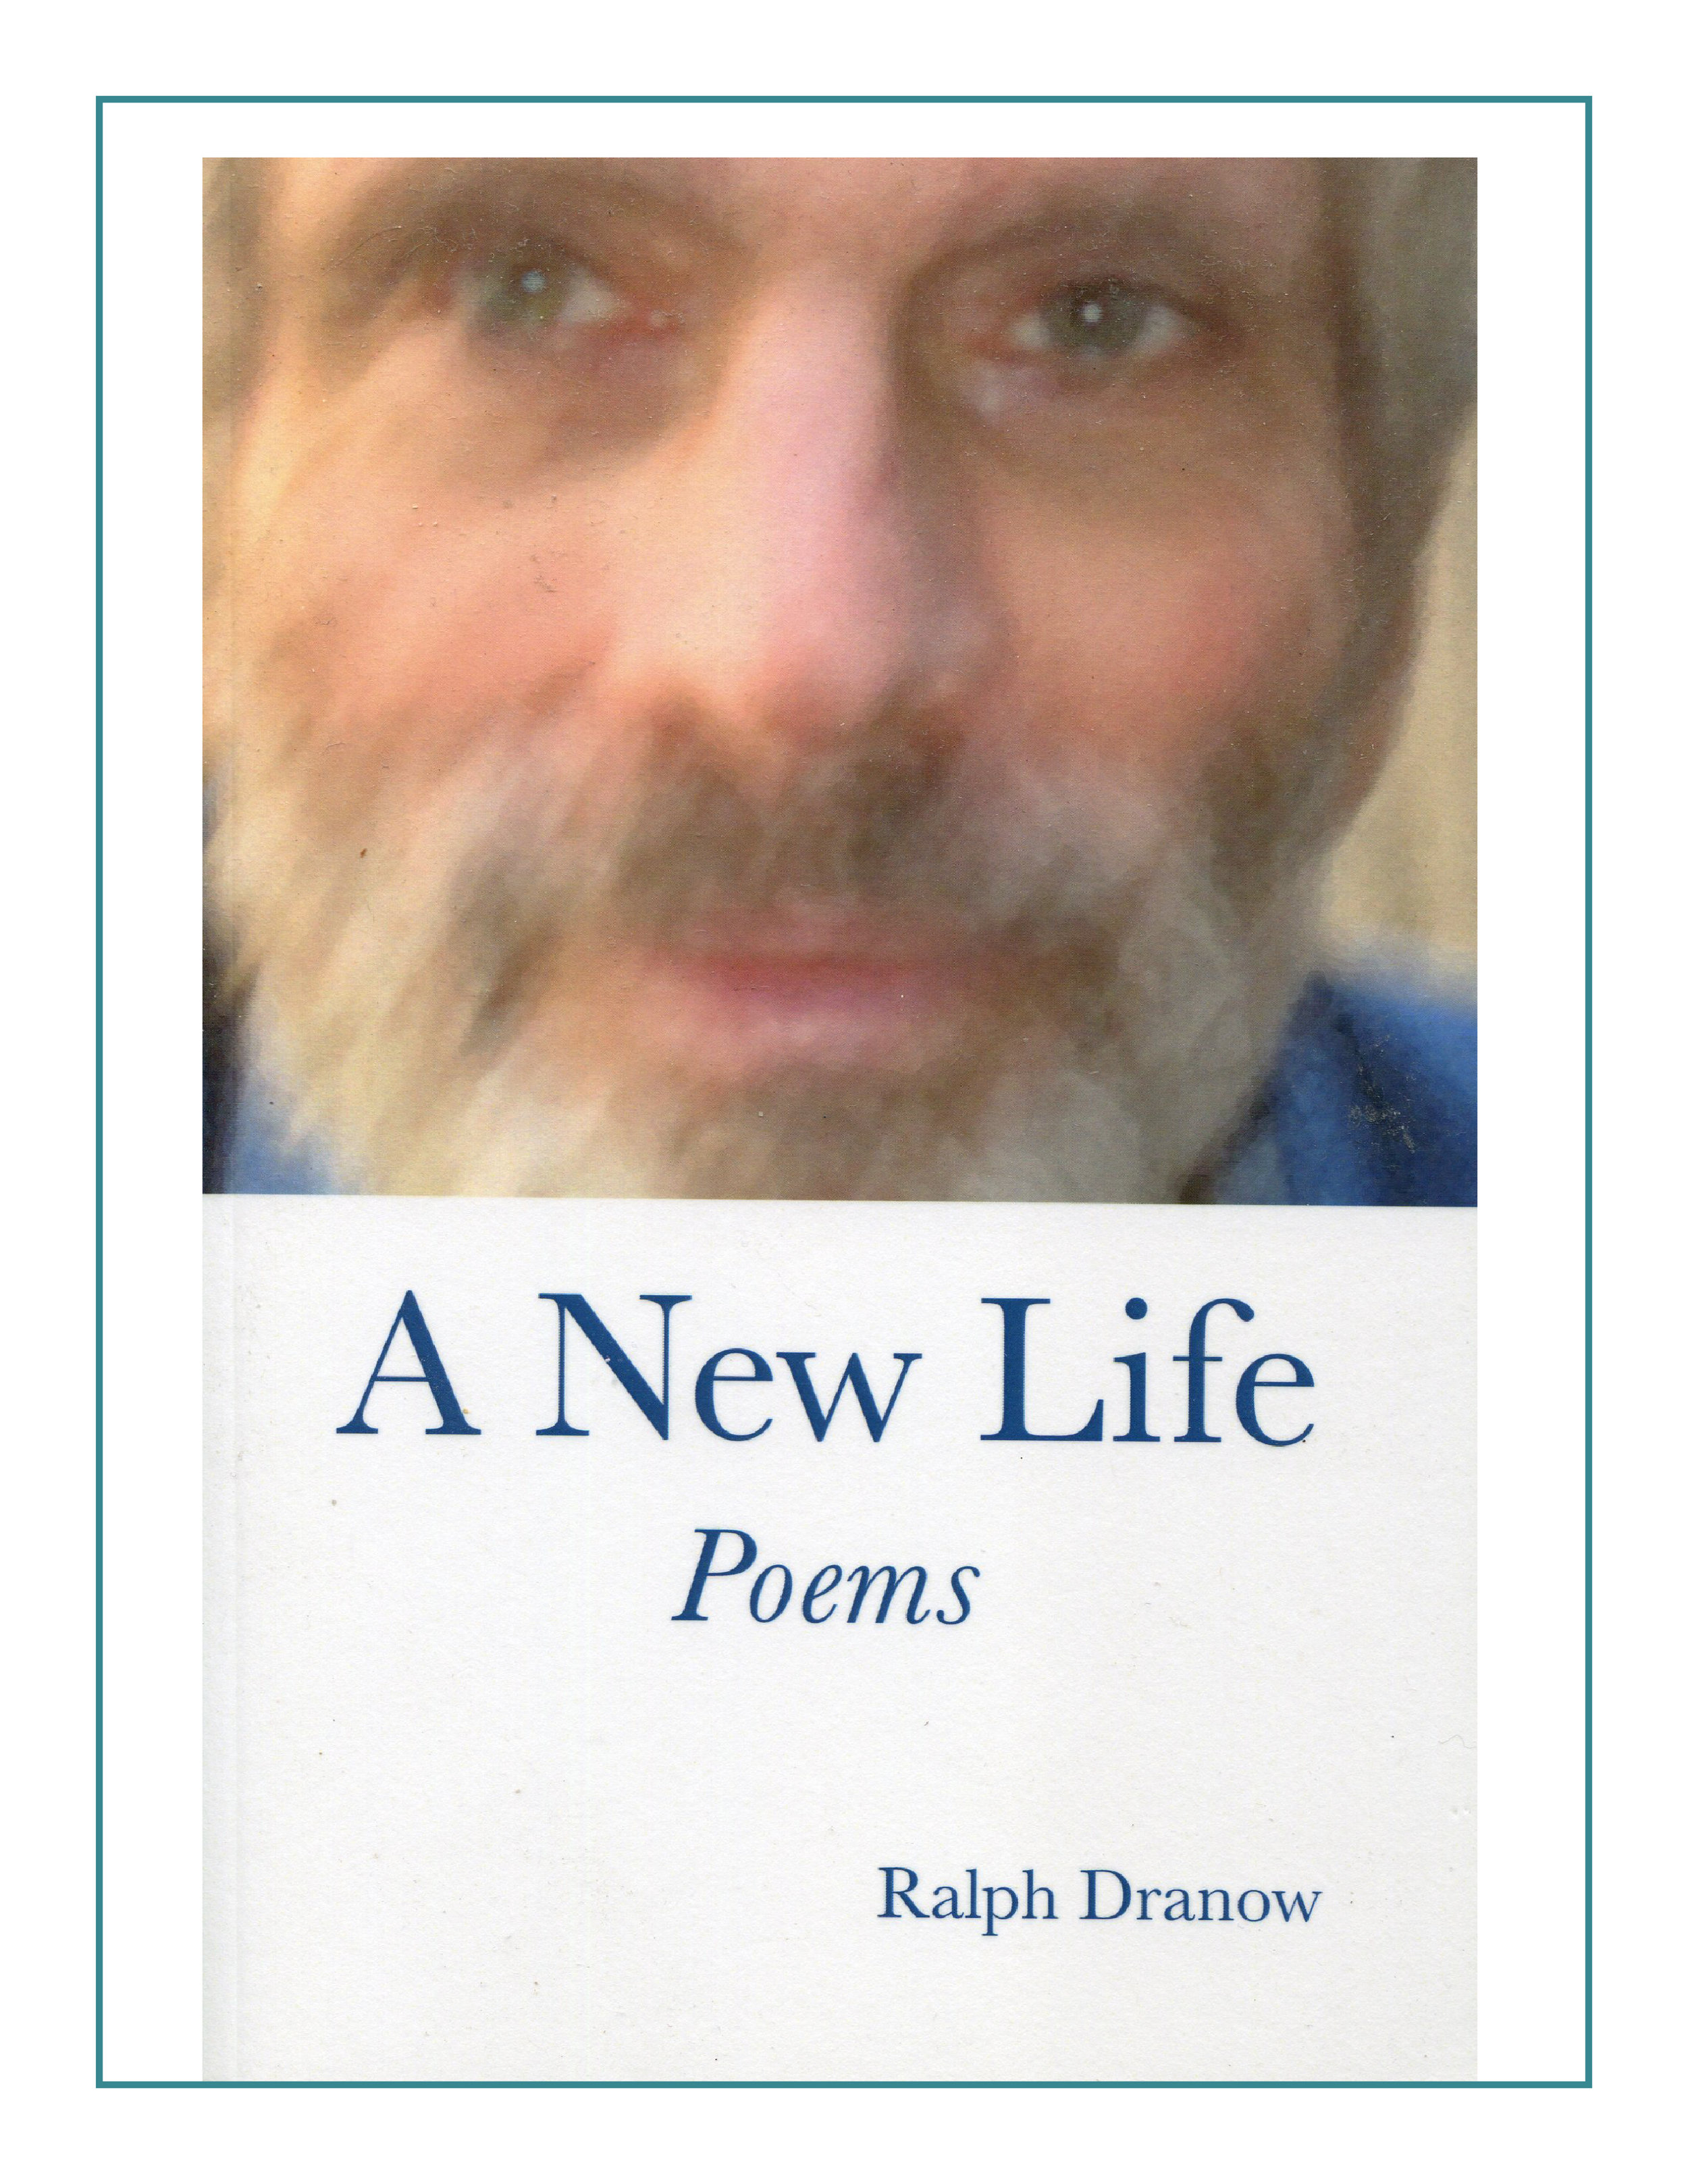 The 76 vivid poems in A NEW LIFE by Ralph Dranow offer us a unique and compassionate view of what it is to be human. -